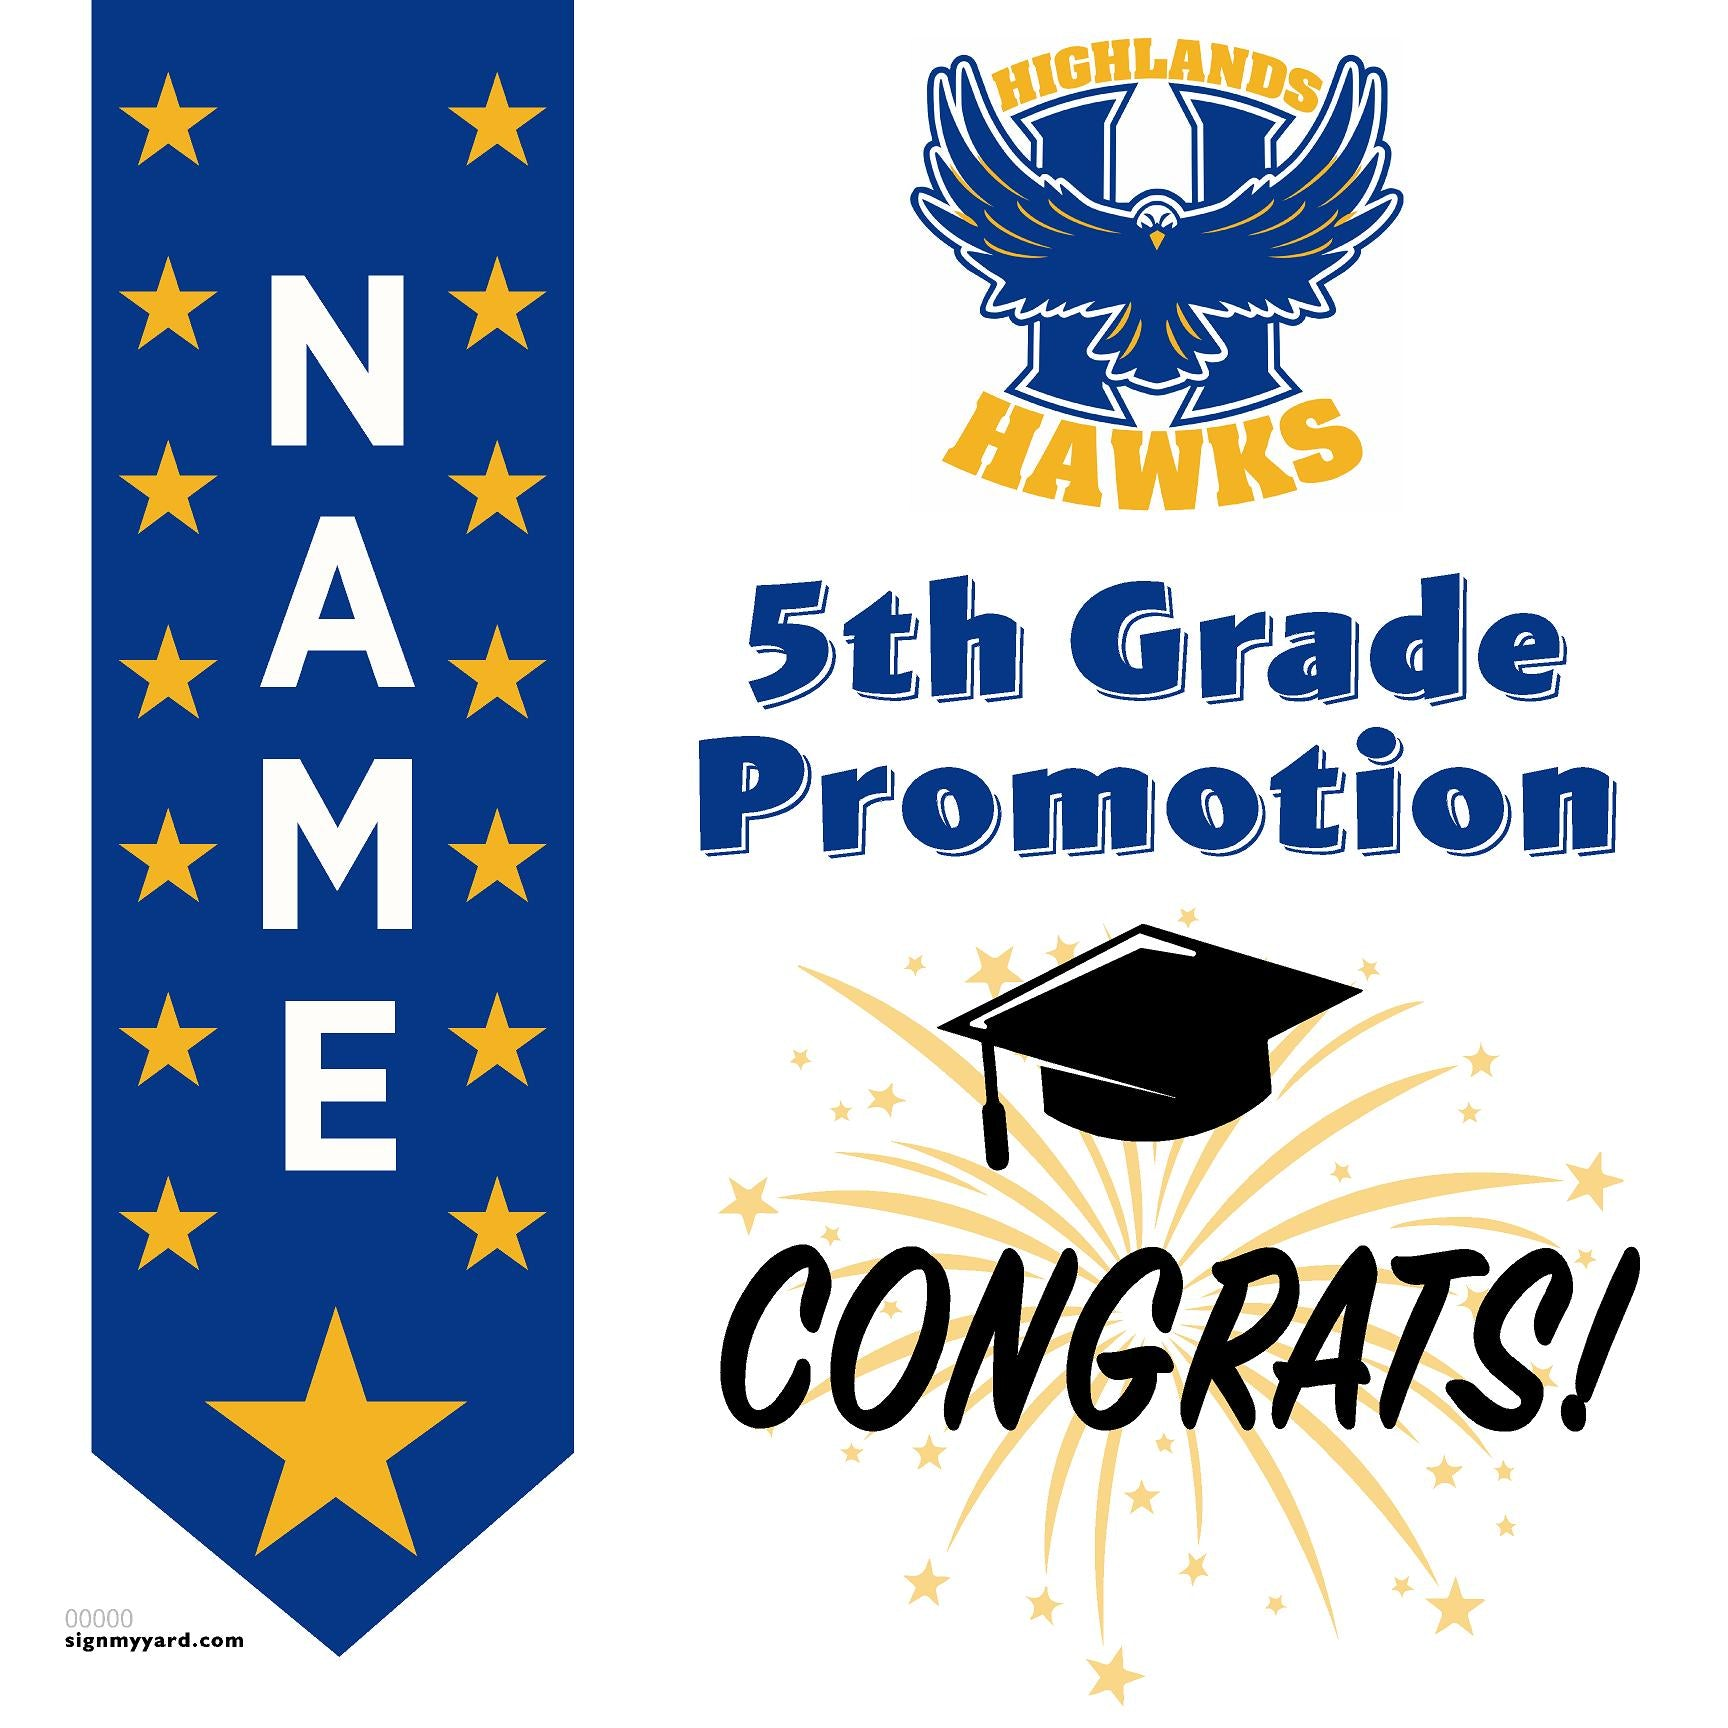 Highlands Elementary School 5th Grade Promotion 24x24 #shineon2027 Yard Sign (Option B)